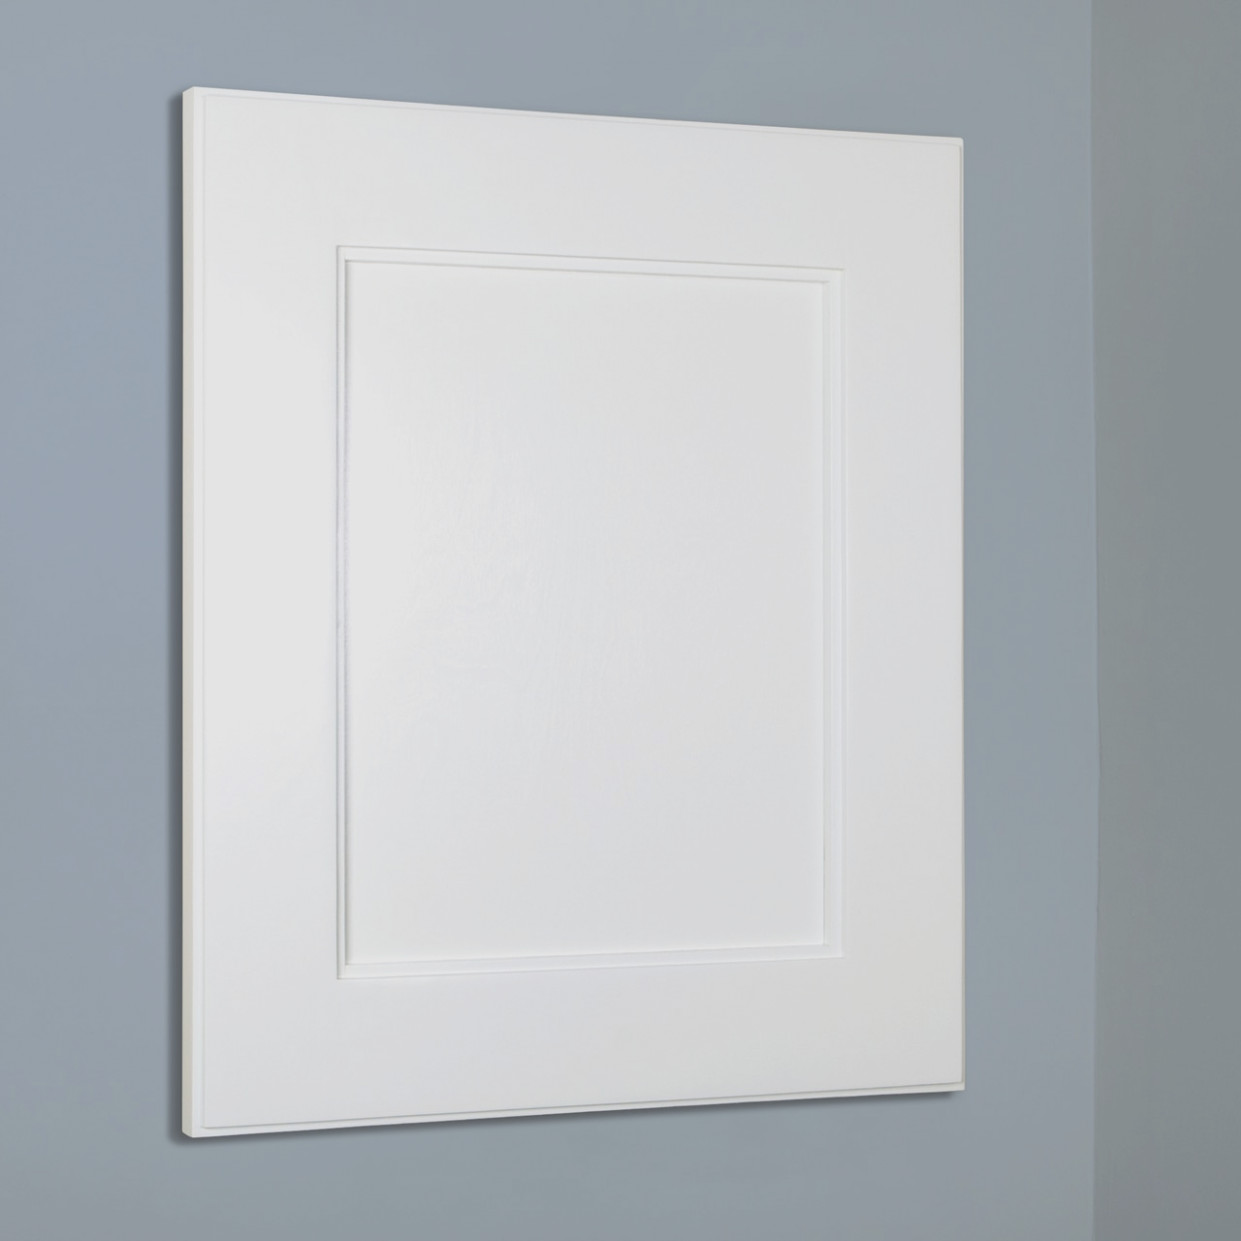 1x1 Recessed Medicine Cabinet With Mirror